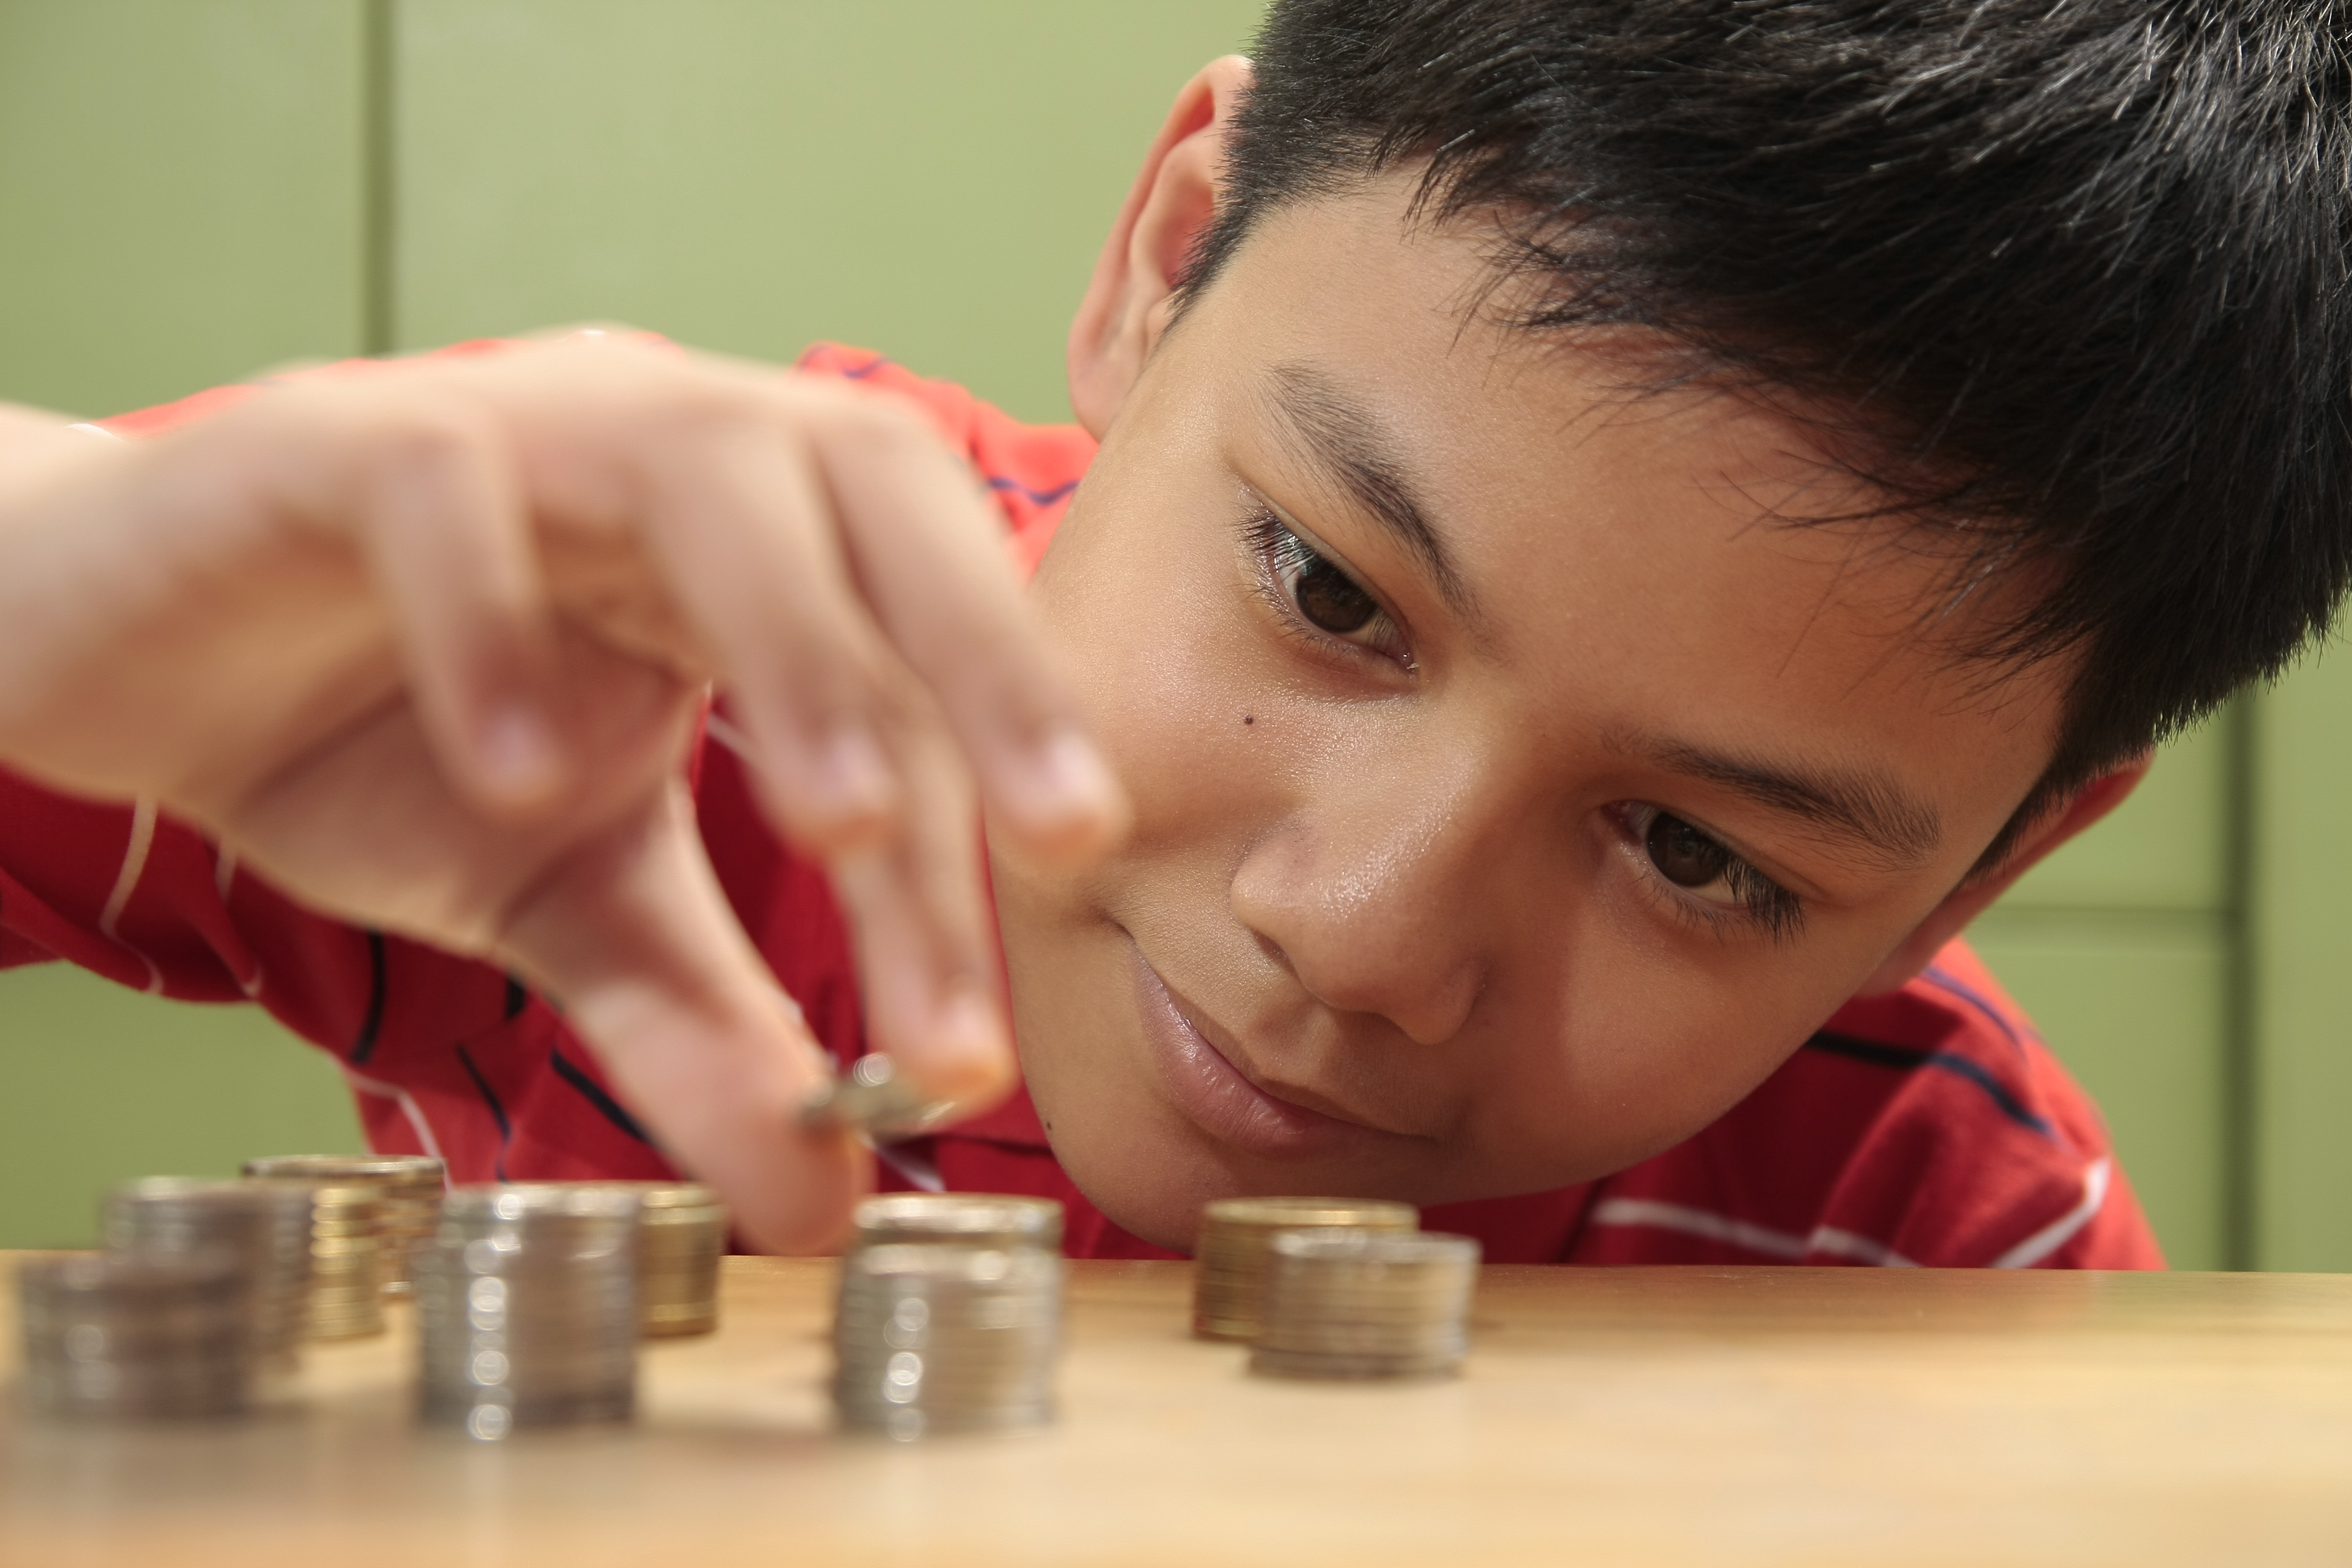 Youth Savings Pilot Explores a Path Forward with Banks